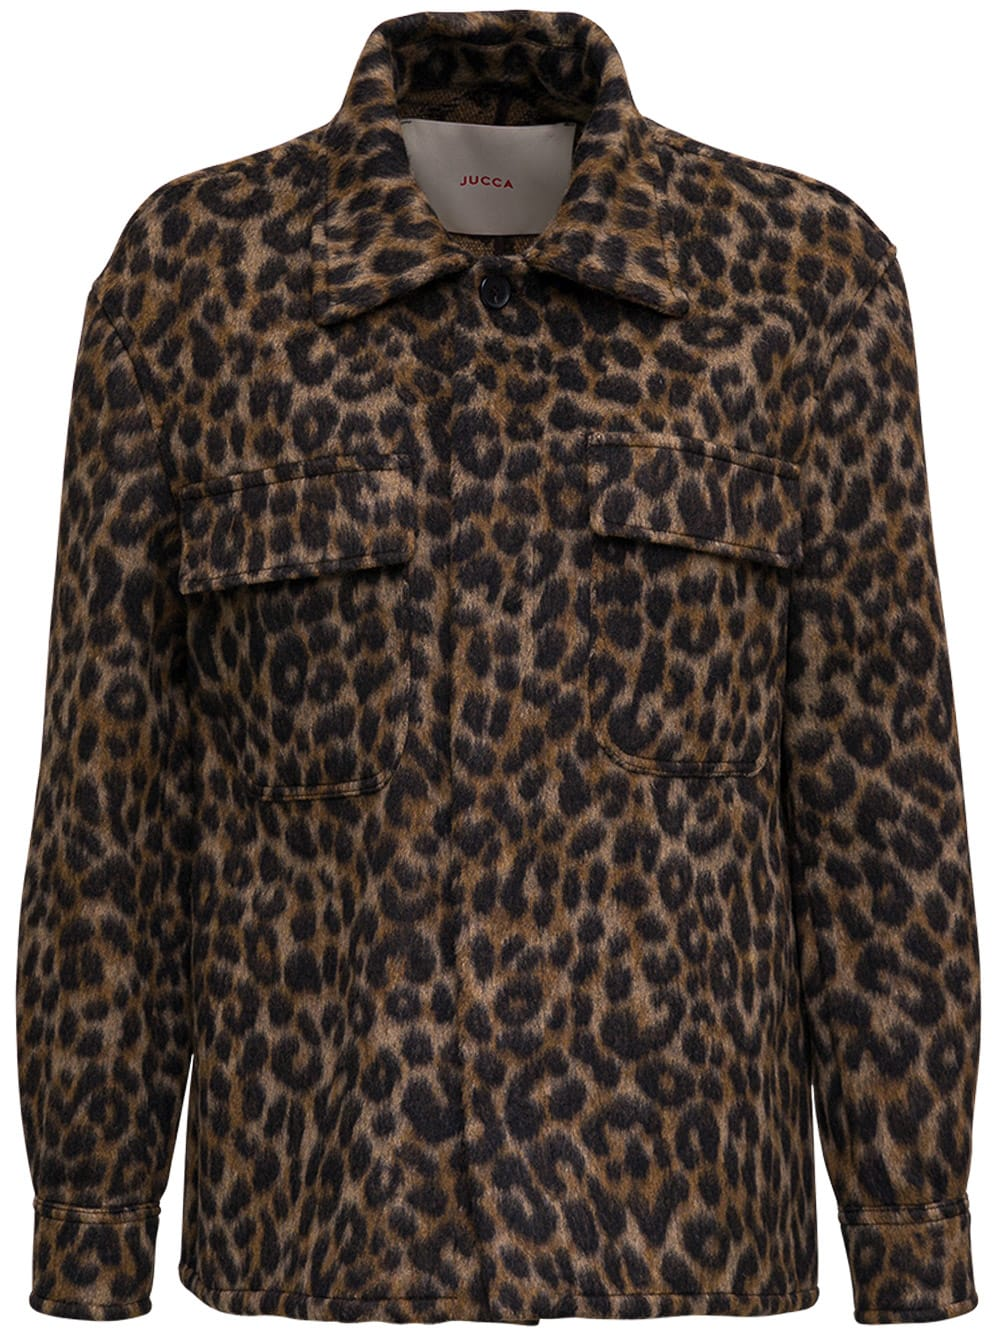 Jucca Animalier Printed Shirt With Pockets